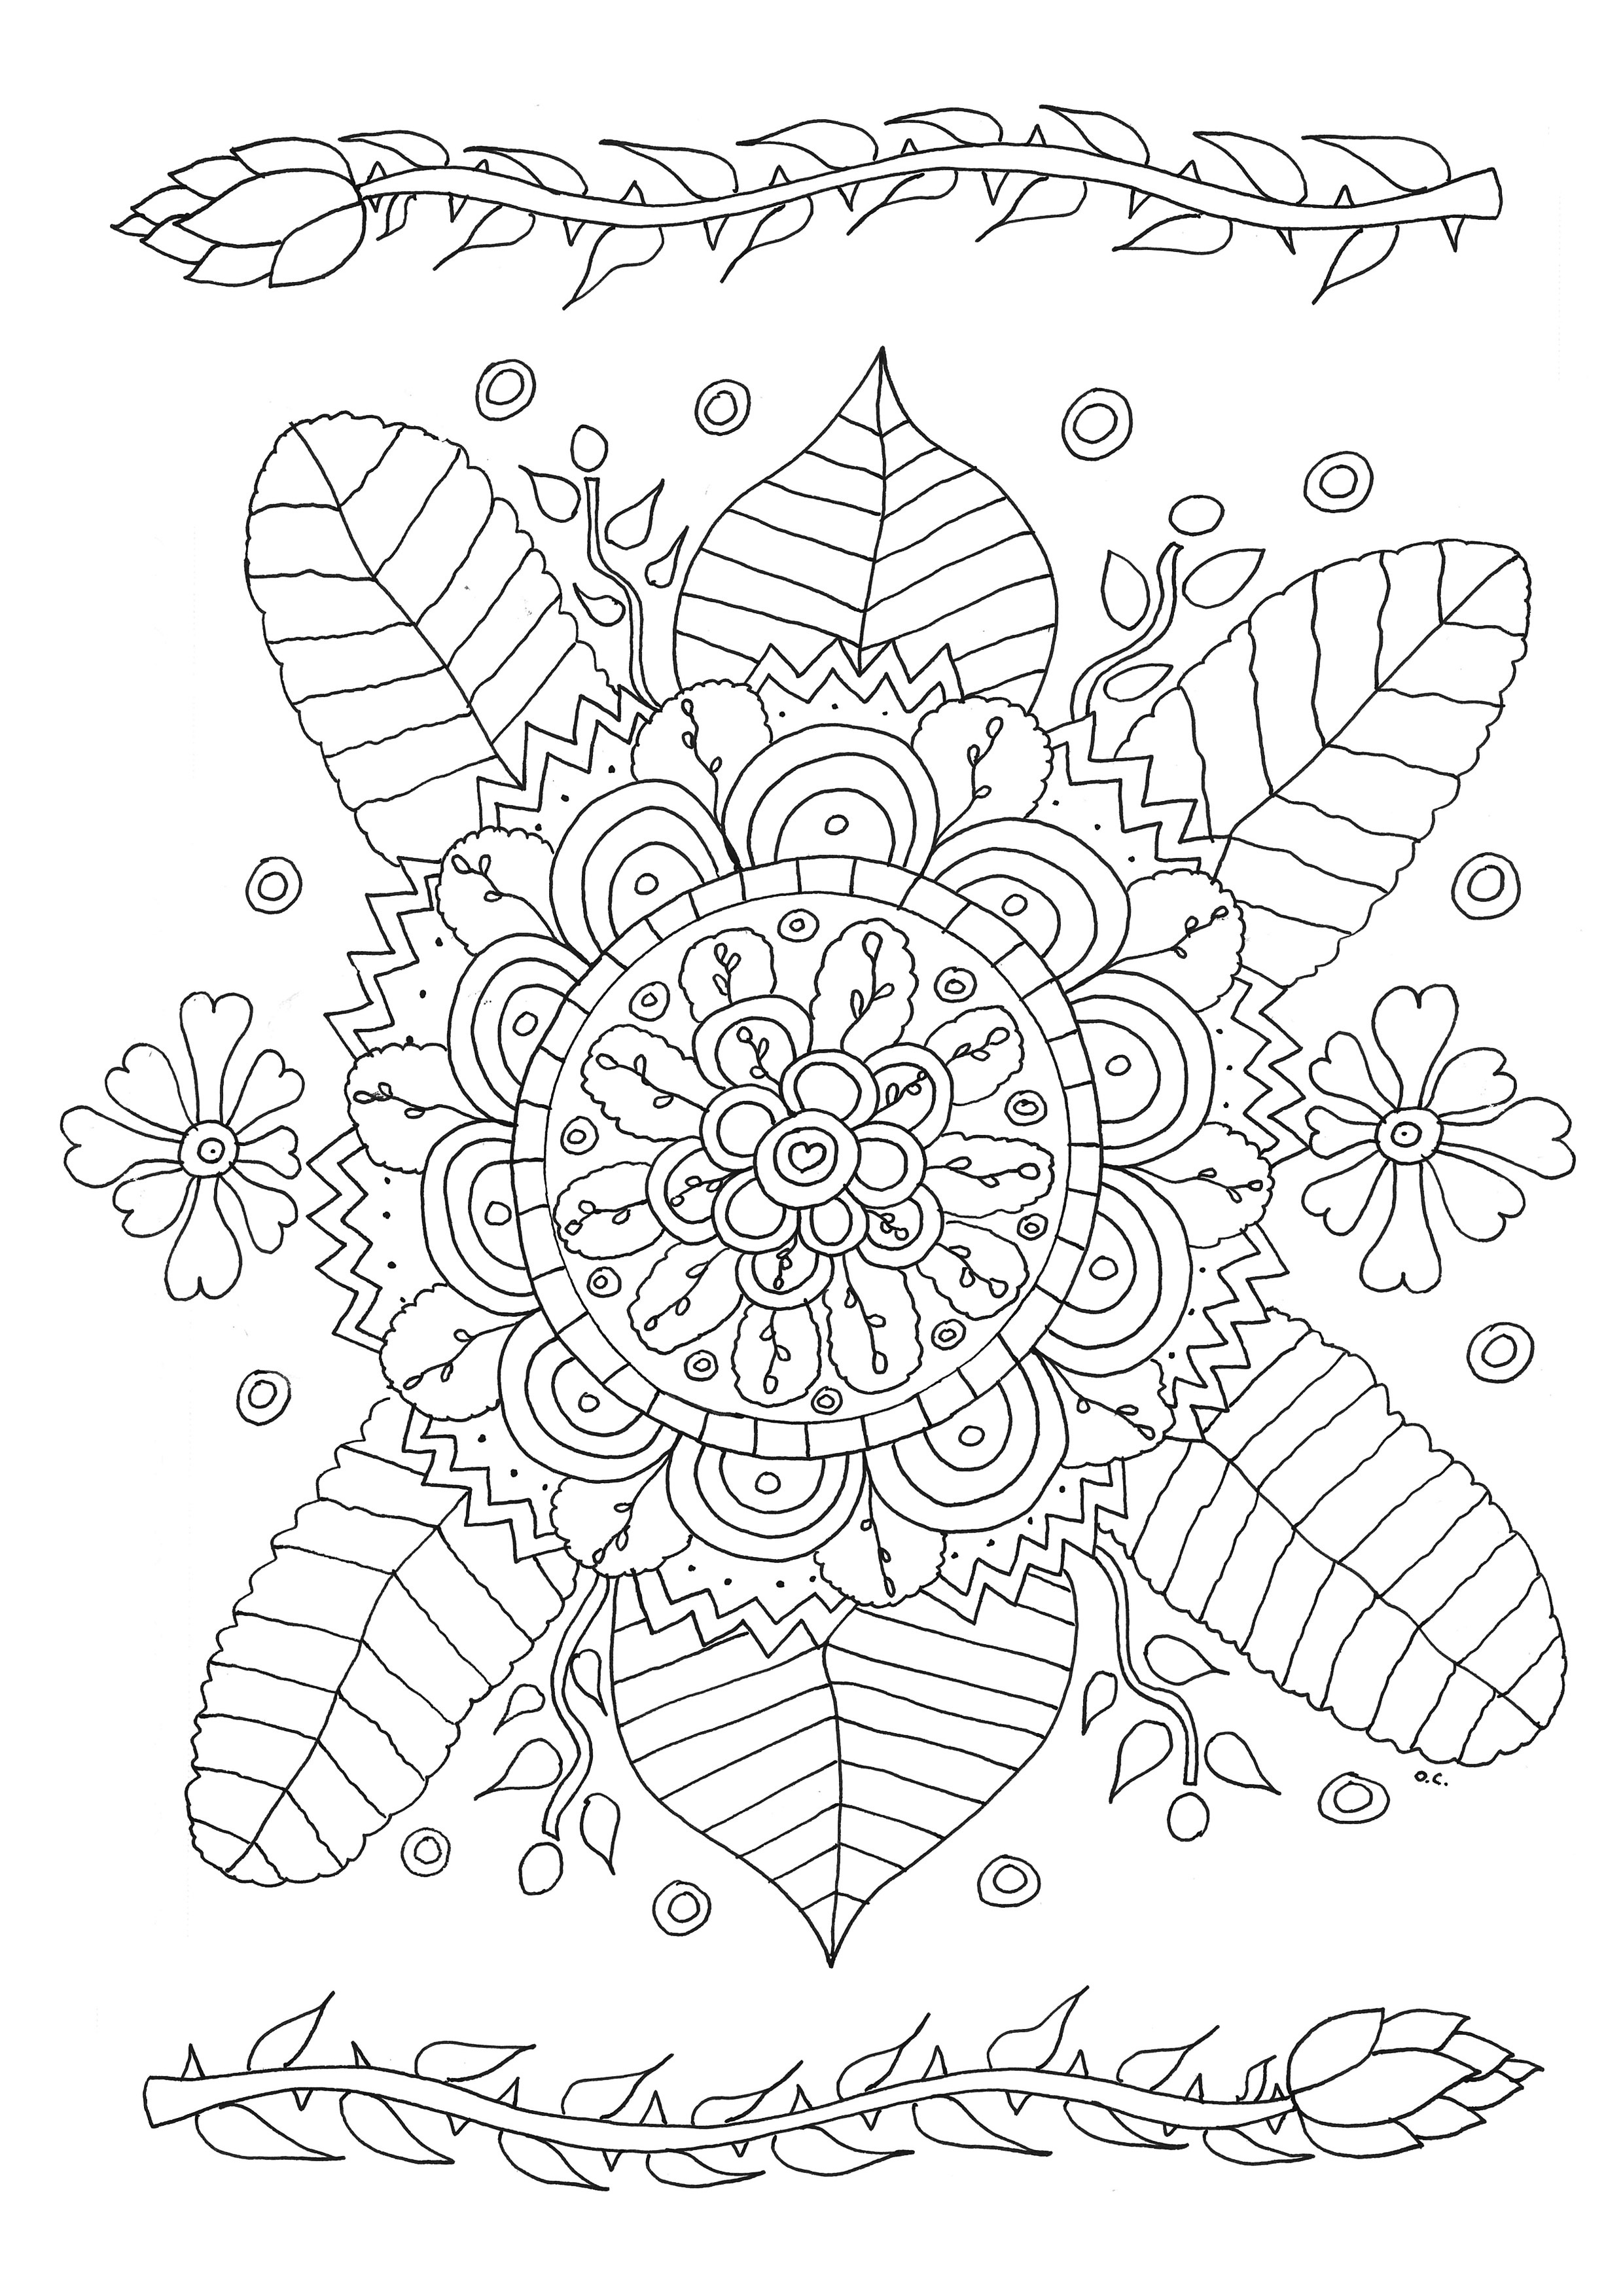 Flowers coloring book beautiful pictures from the garden of nature - Coloring Simple Flowers Drawing By Olivier Free To Print